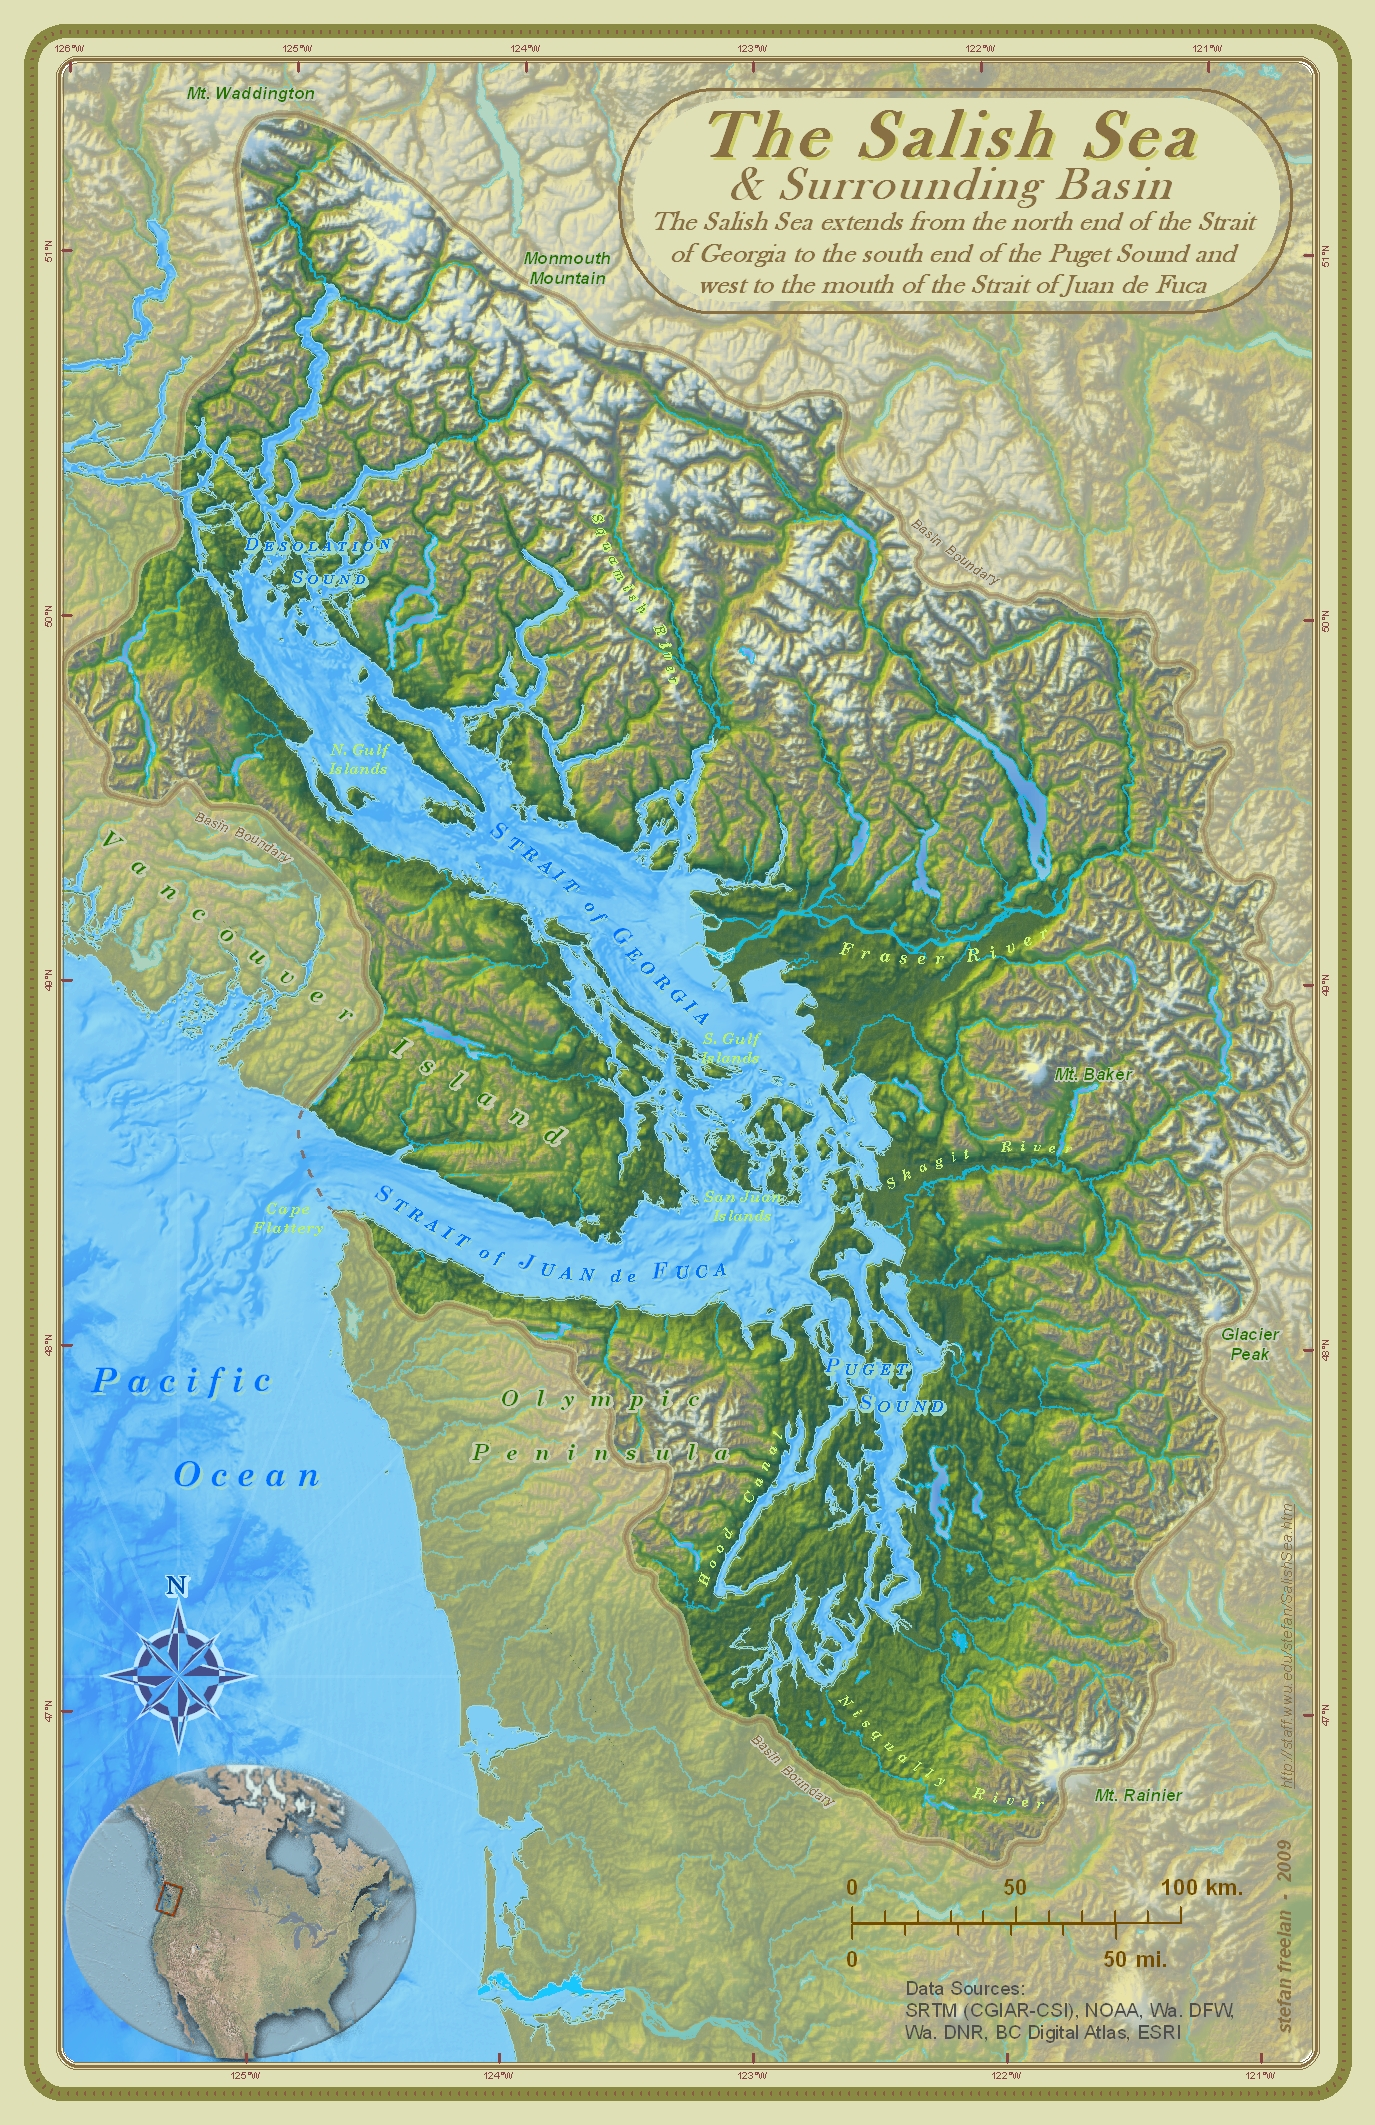 Physical map of the Salish Sea and Surrounding Basin (Strait of Georgia, Strait of Juan de Fuca and the Pacific Ocean)